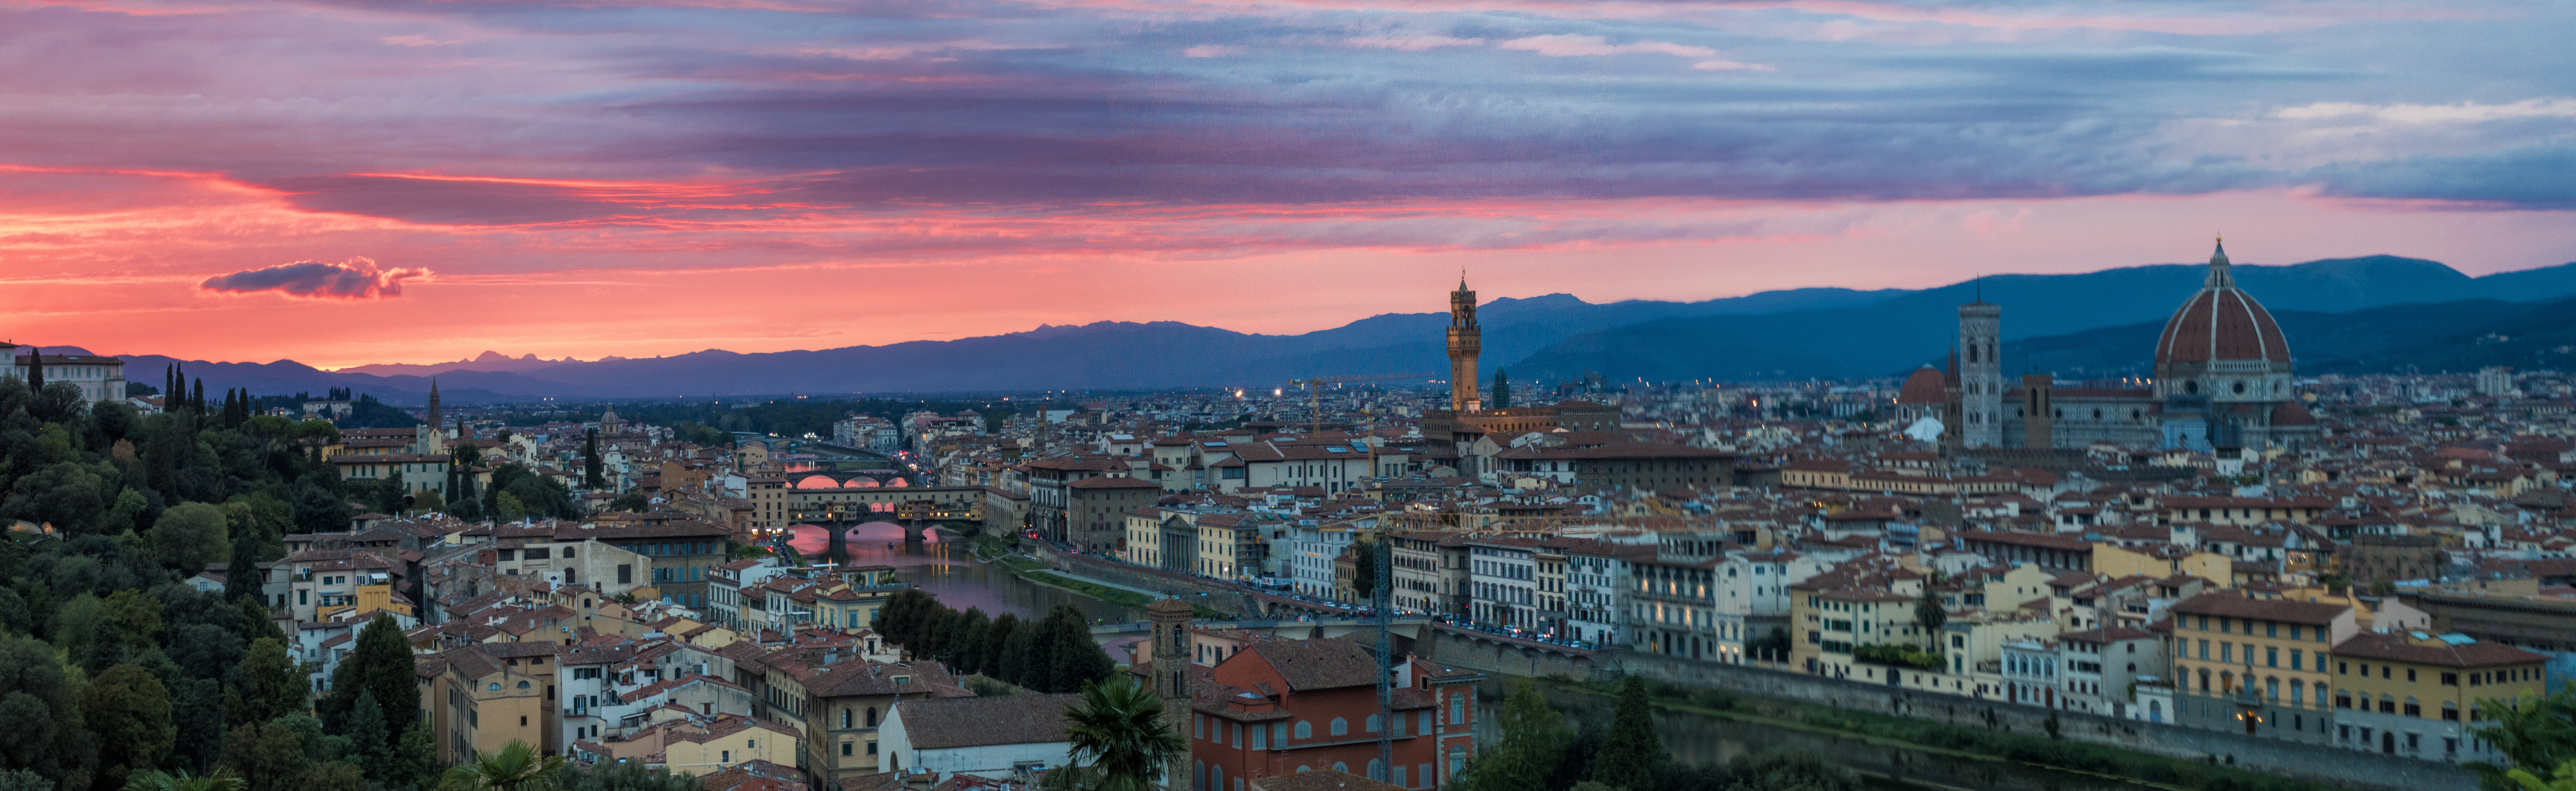 File:Sunset at Piazzale Michelangelo, Florence, Italy.jpg - Wikimedia Commons